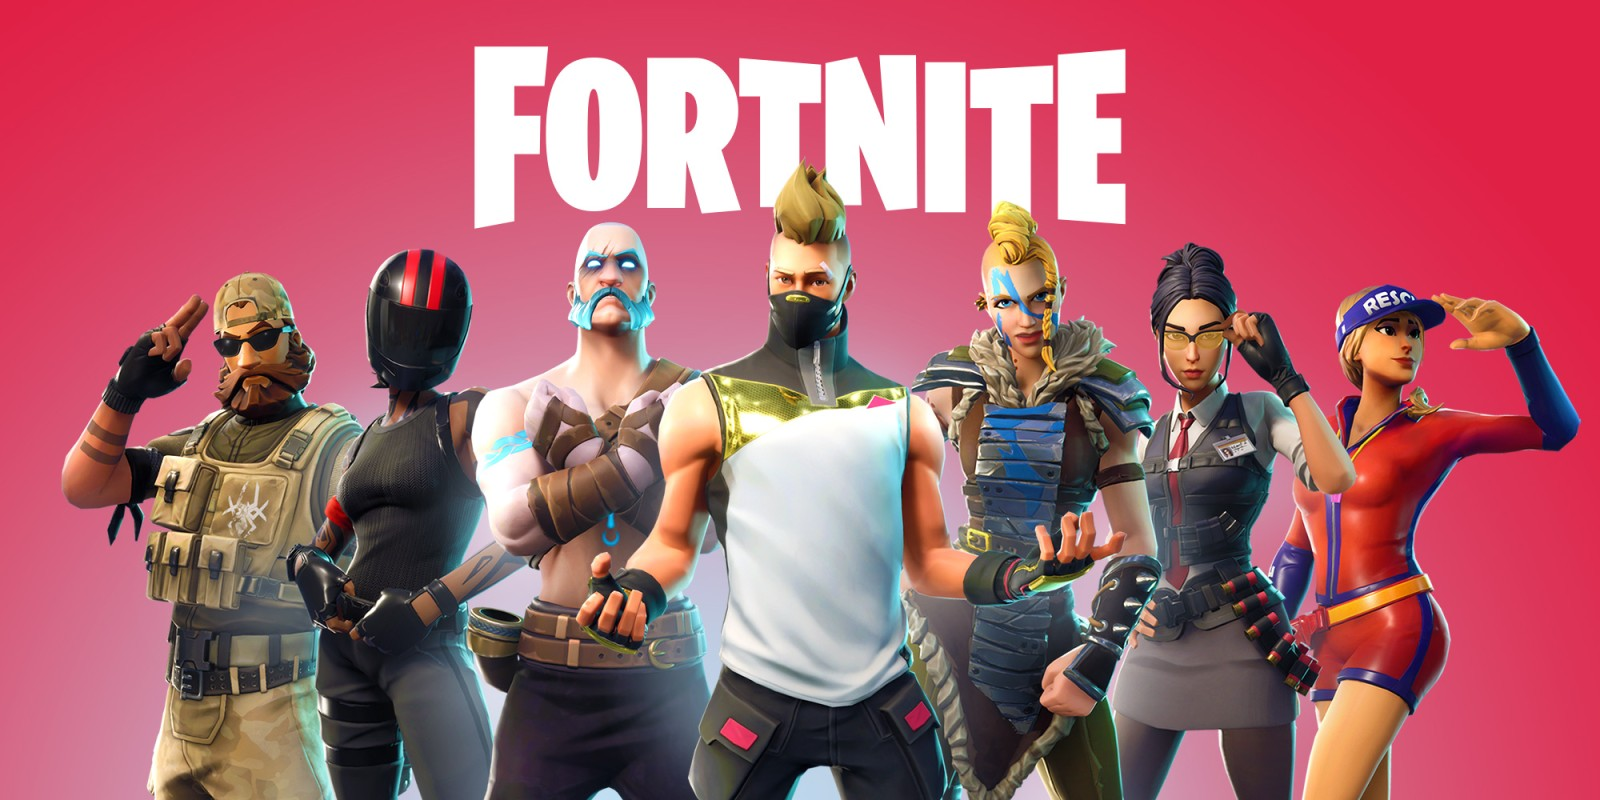 fortnite milliard de dollars